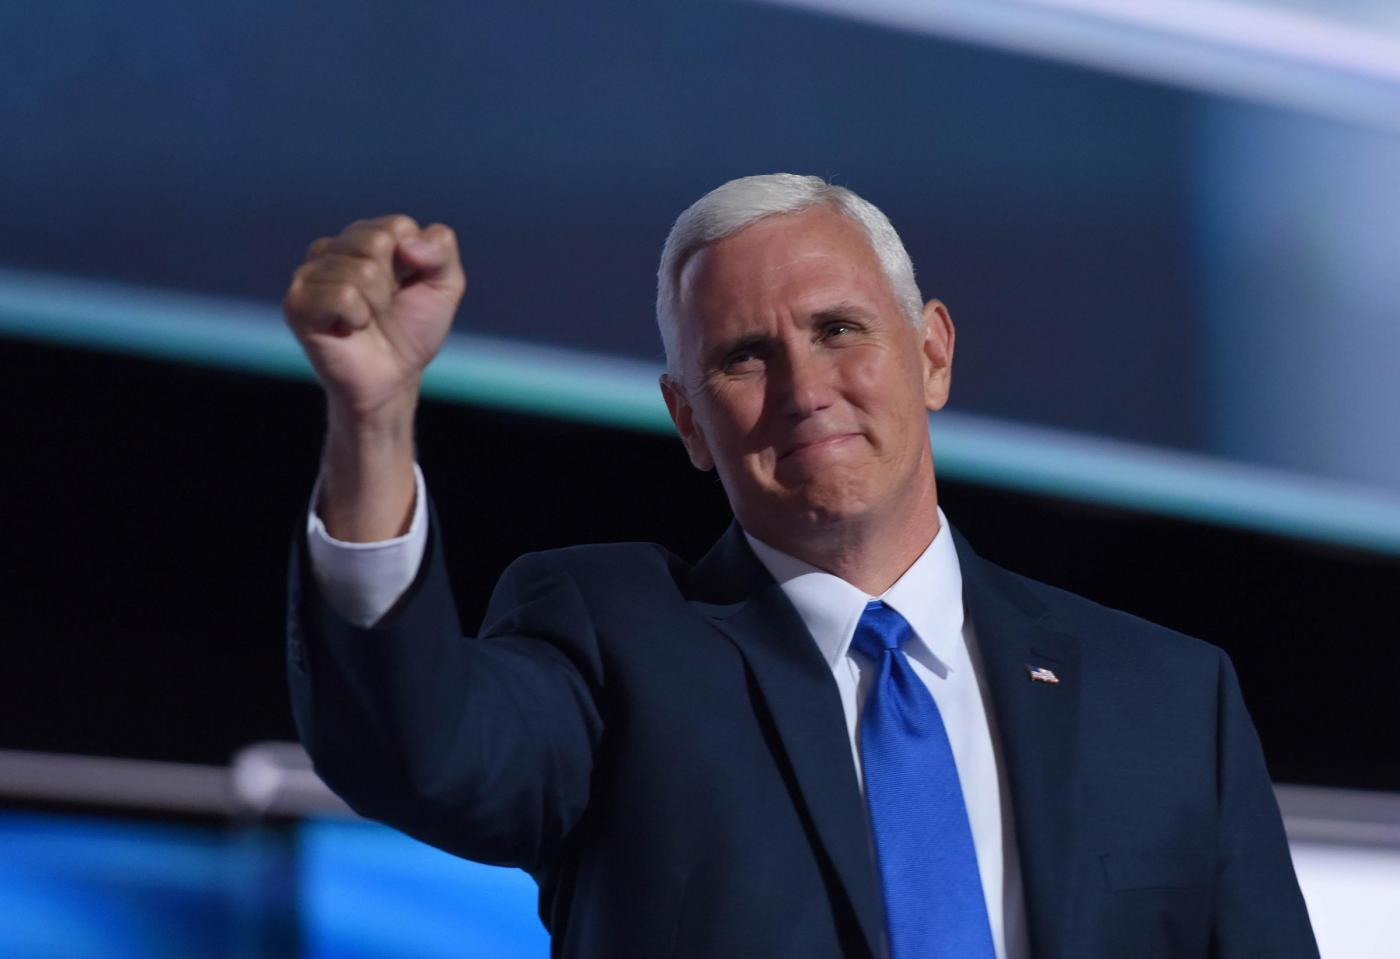 U.S. PRESIDENTIAL ELECTIONS VICE PRESIDENT ELECT MIKE PENCE FILE